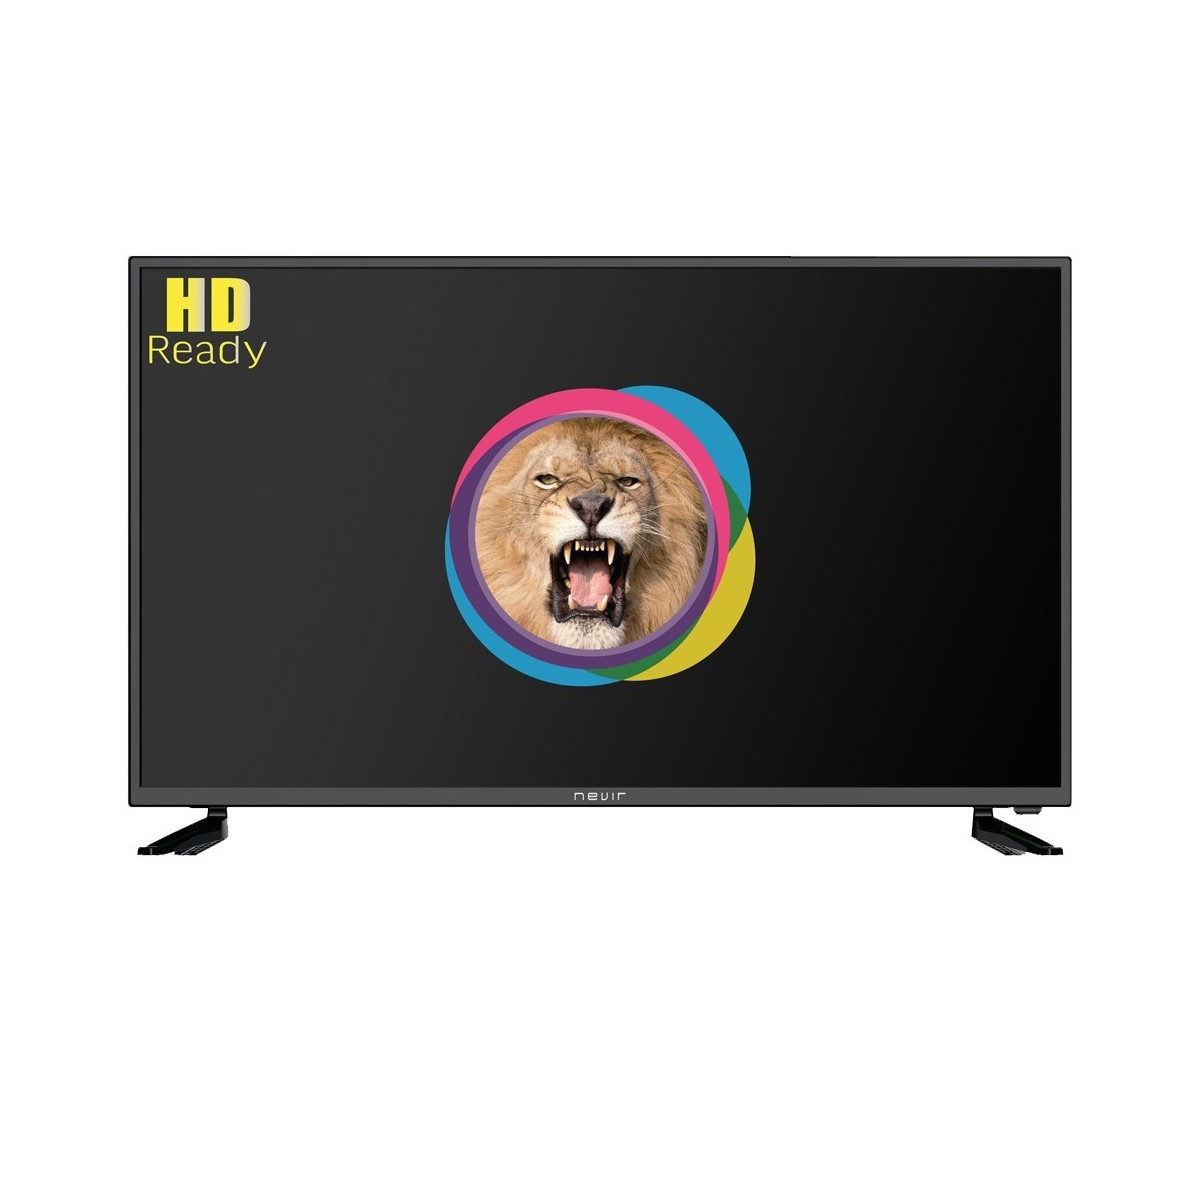 TV LED NEVIR NVR8061 39 Inch SmartTV Android